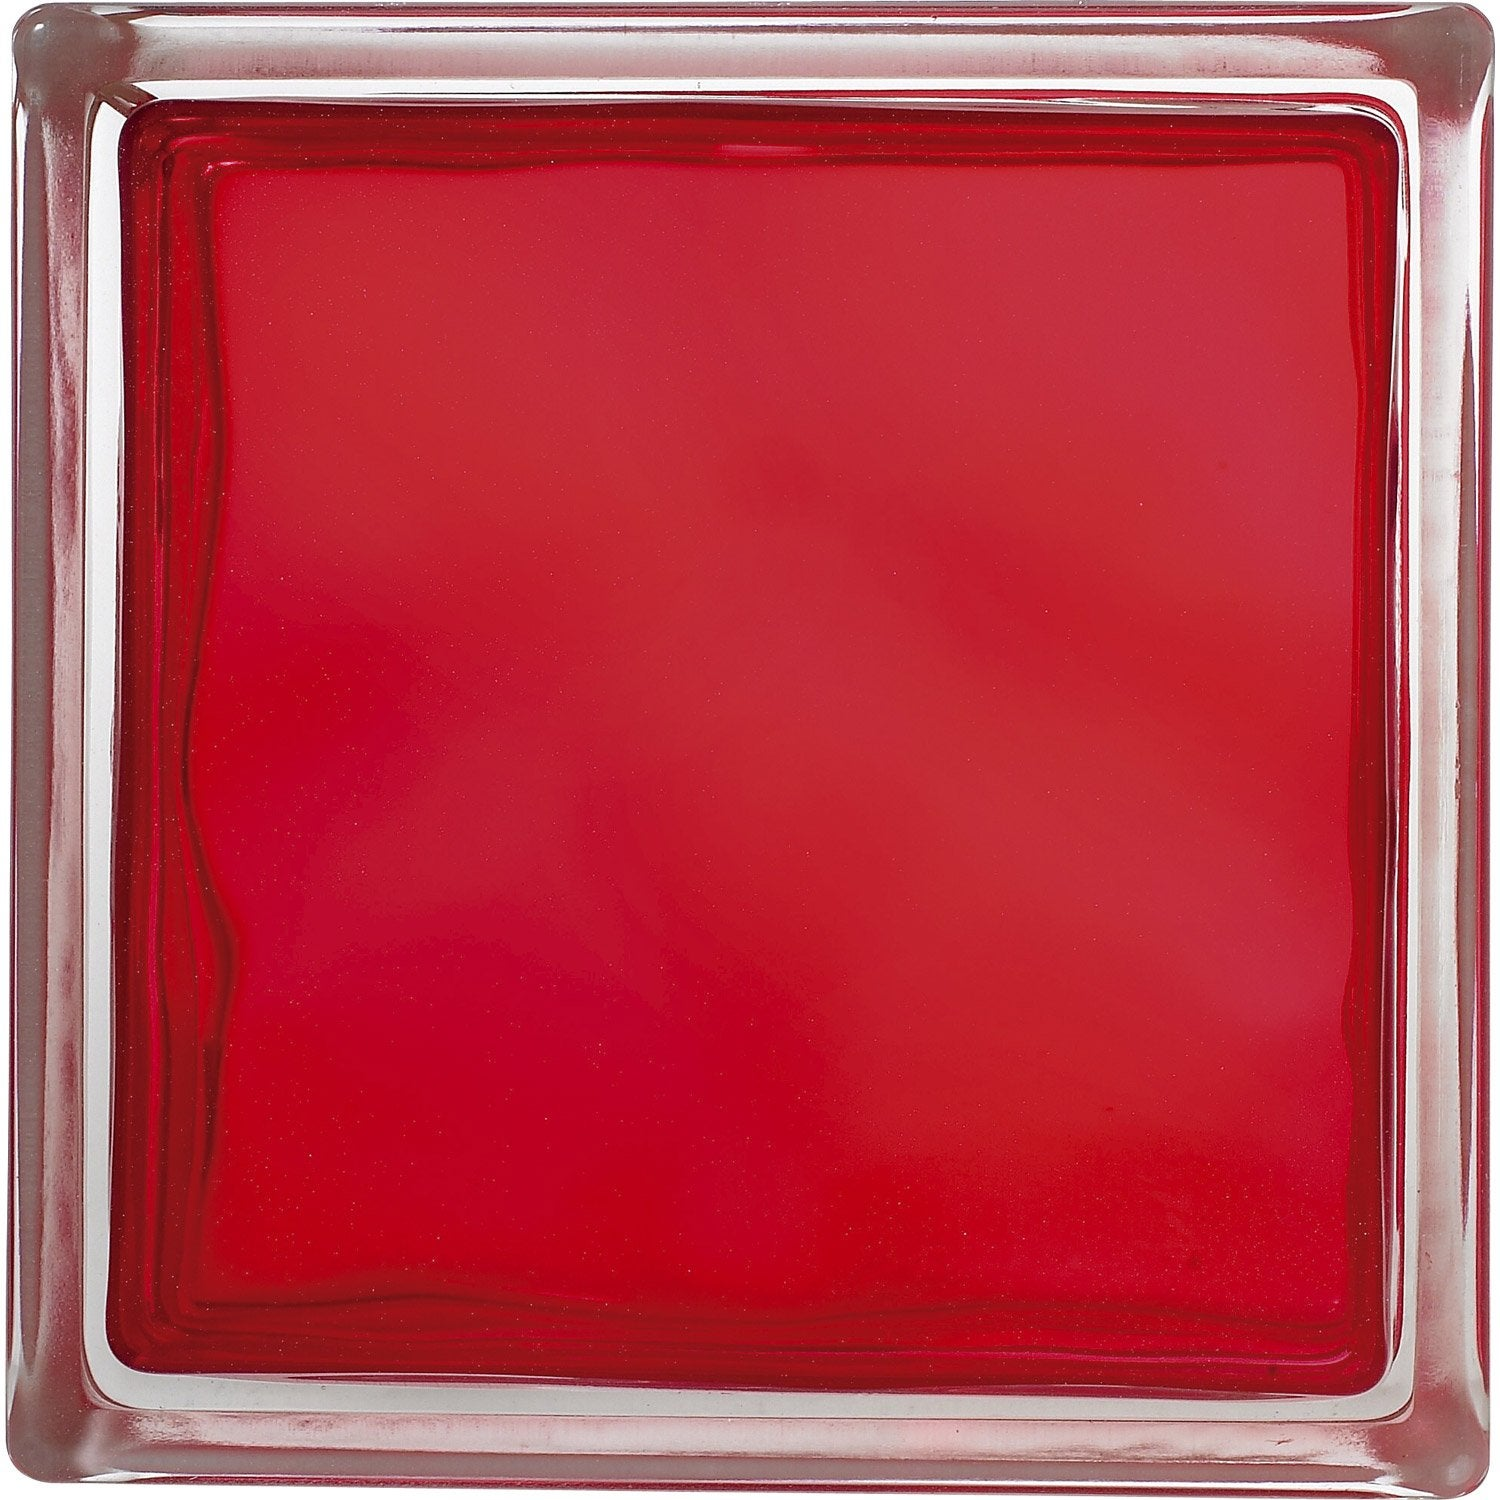 Brique de verre rouge ondul brillant leroy merlin for Salle de bain carreau de verre